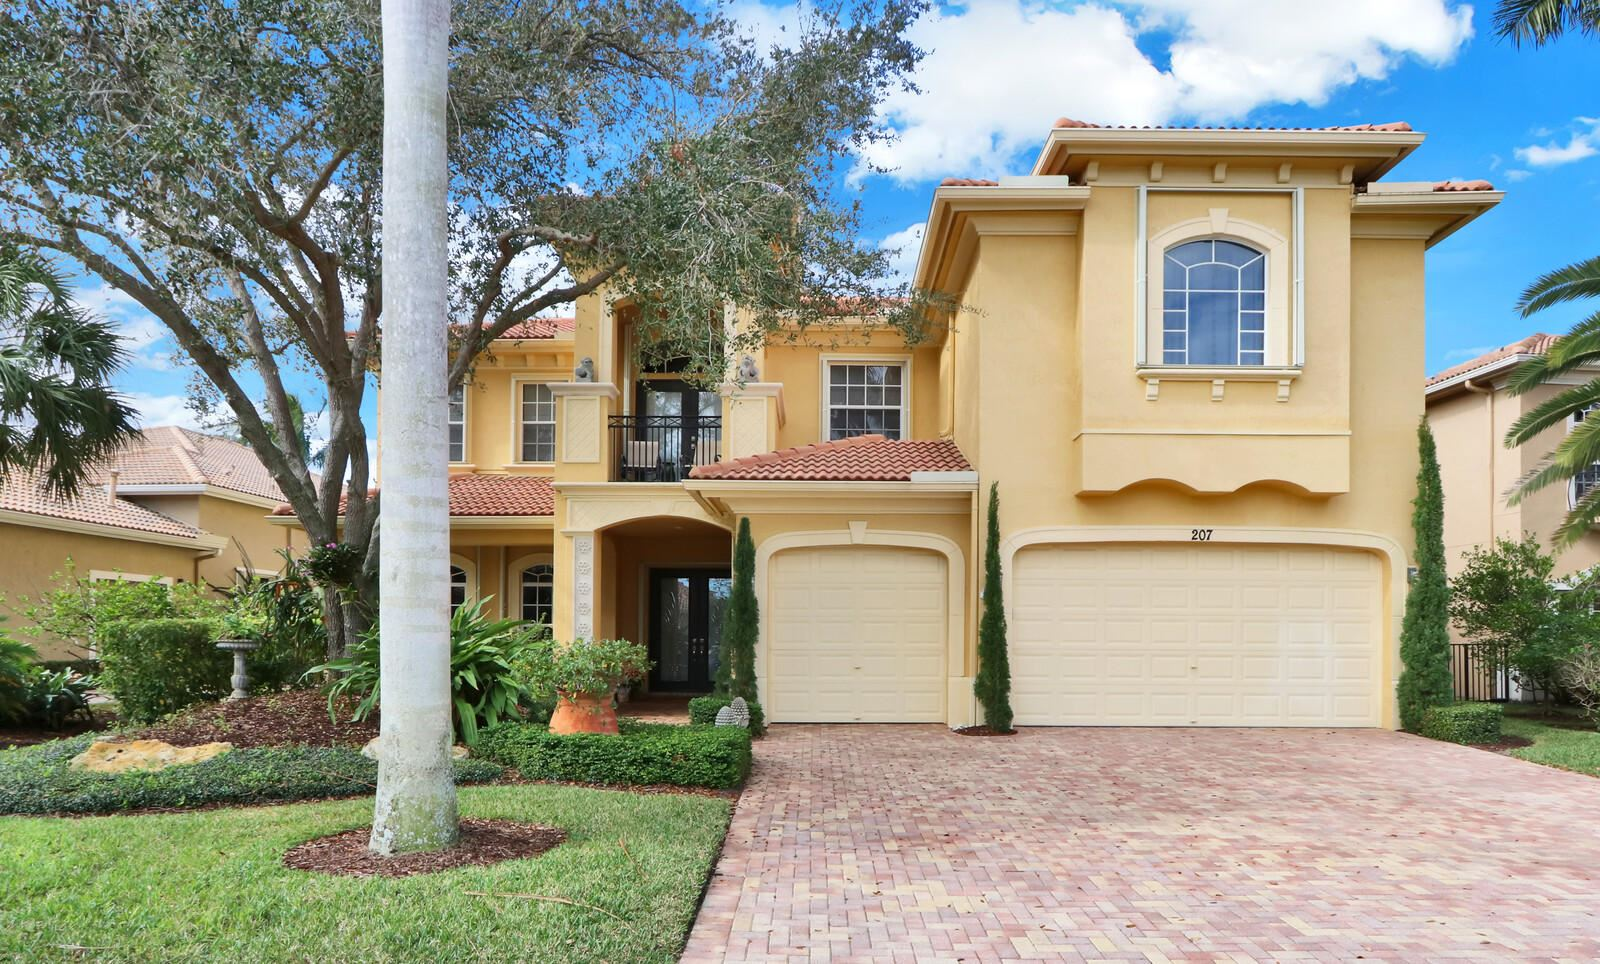 Photo of 207 Montant Drive, Palm Beach Gardens, FL 33410 (MLS # RX-10683616)